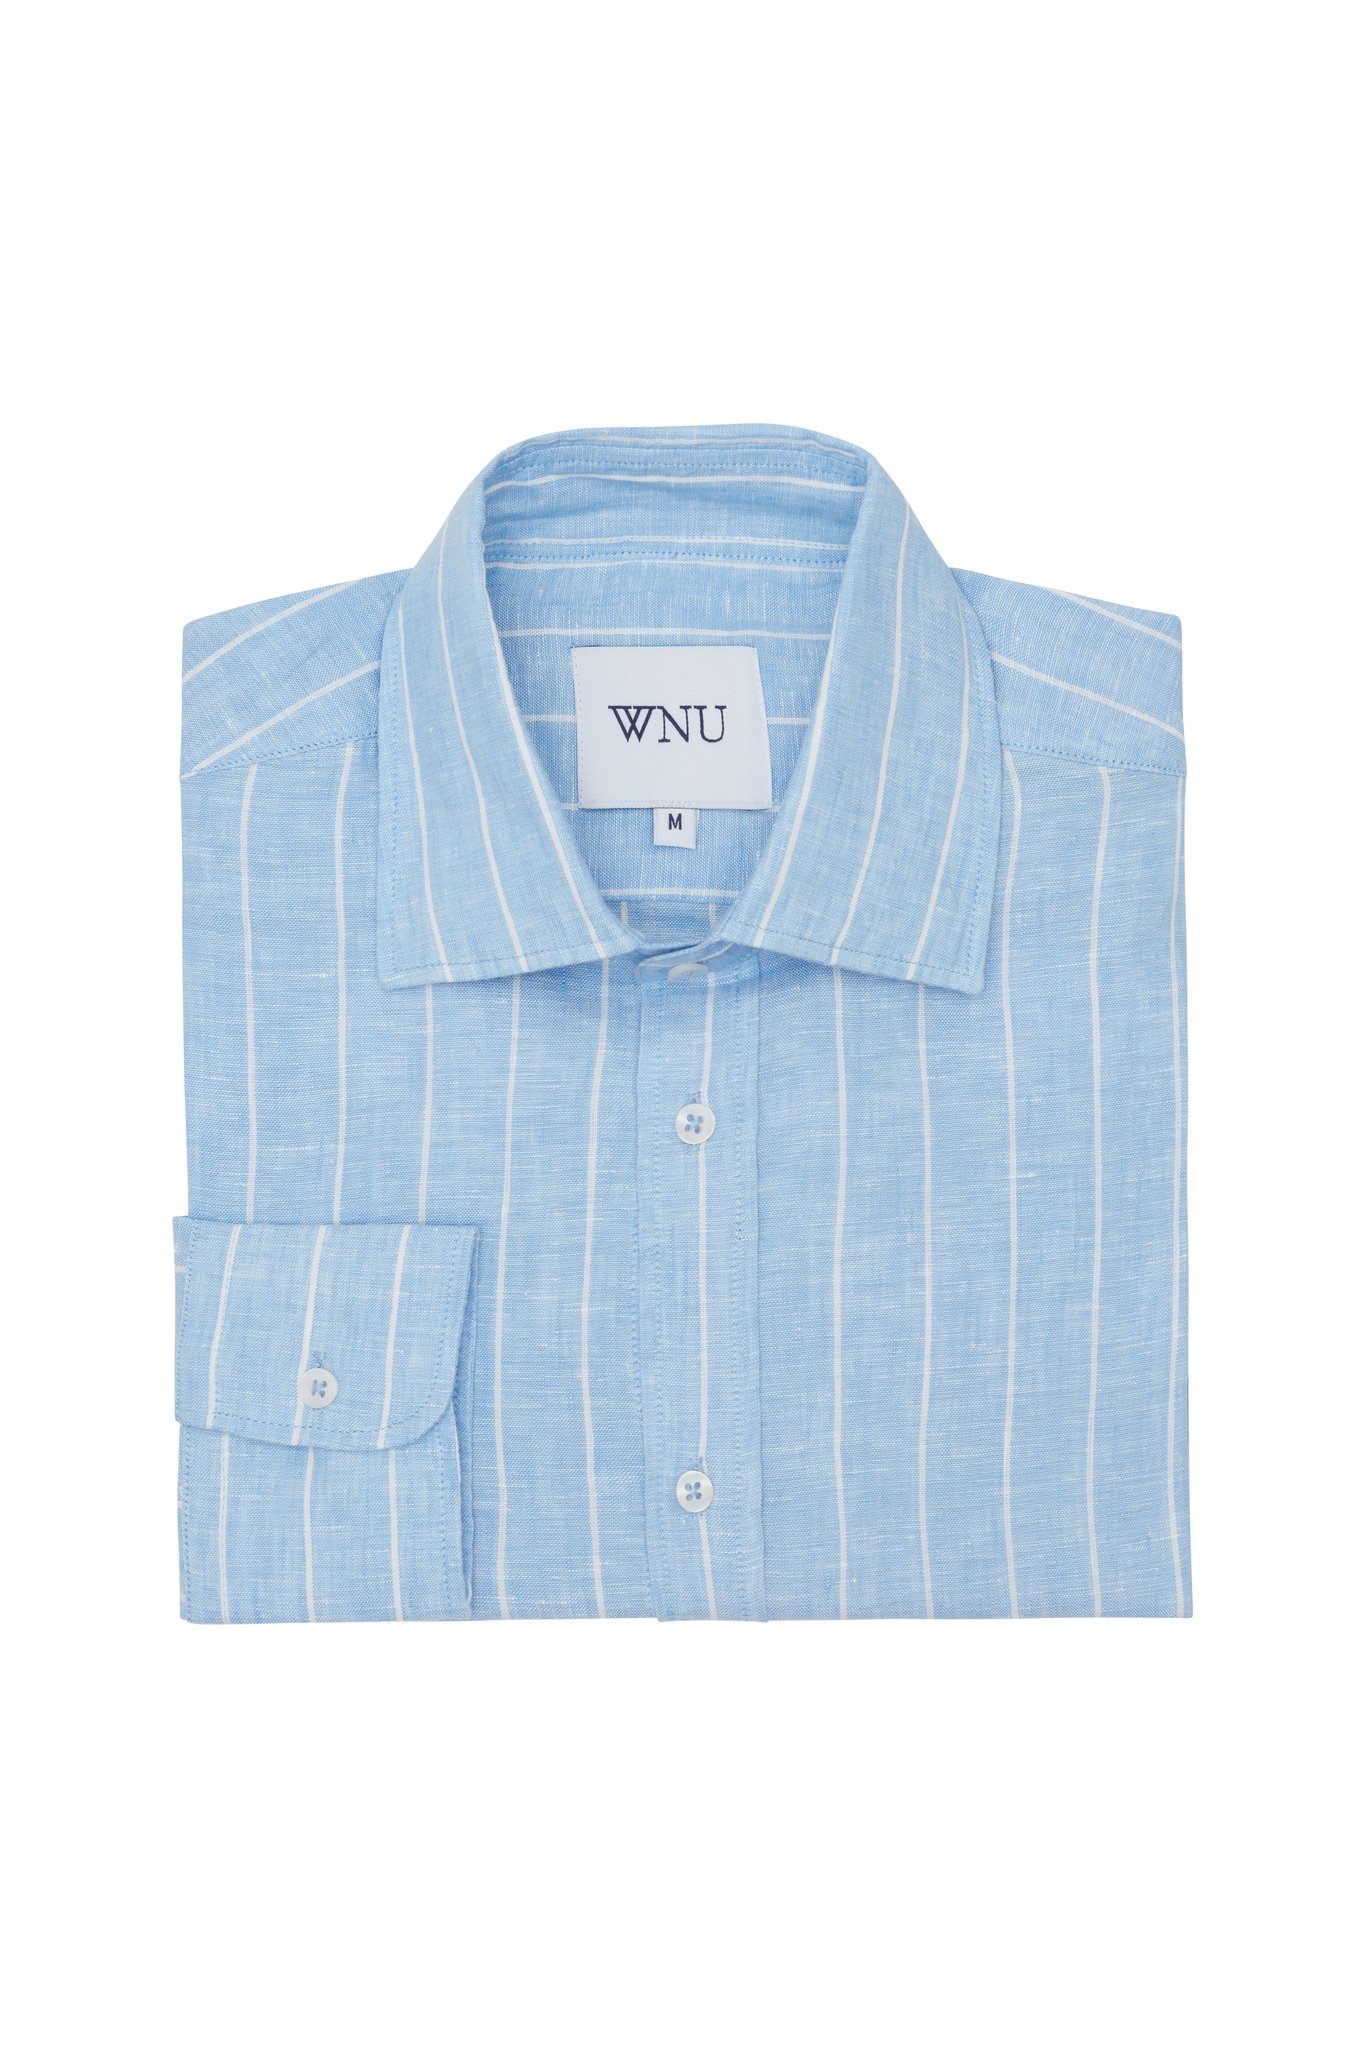 Linen blue stripe.jpg